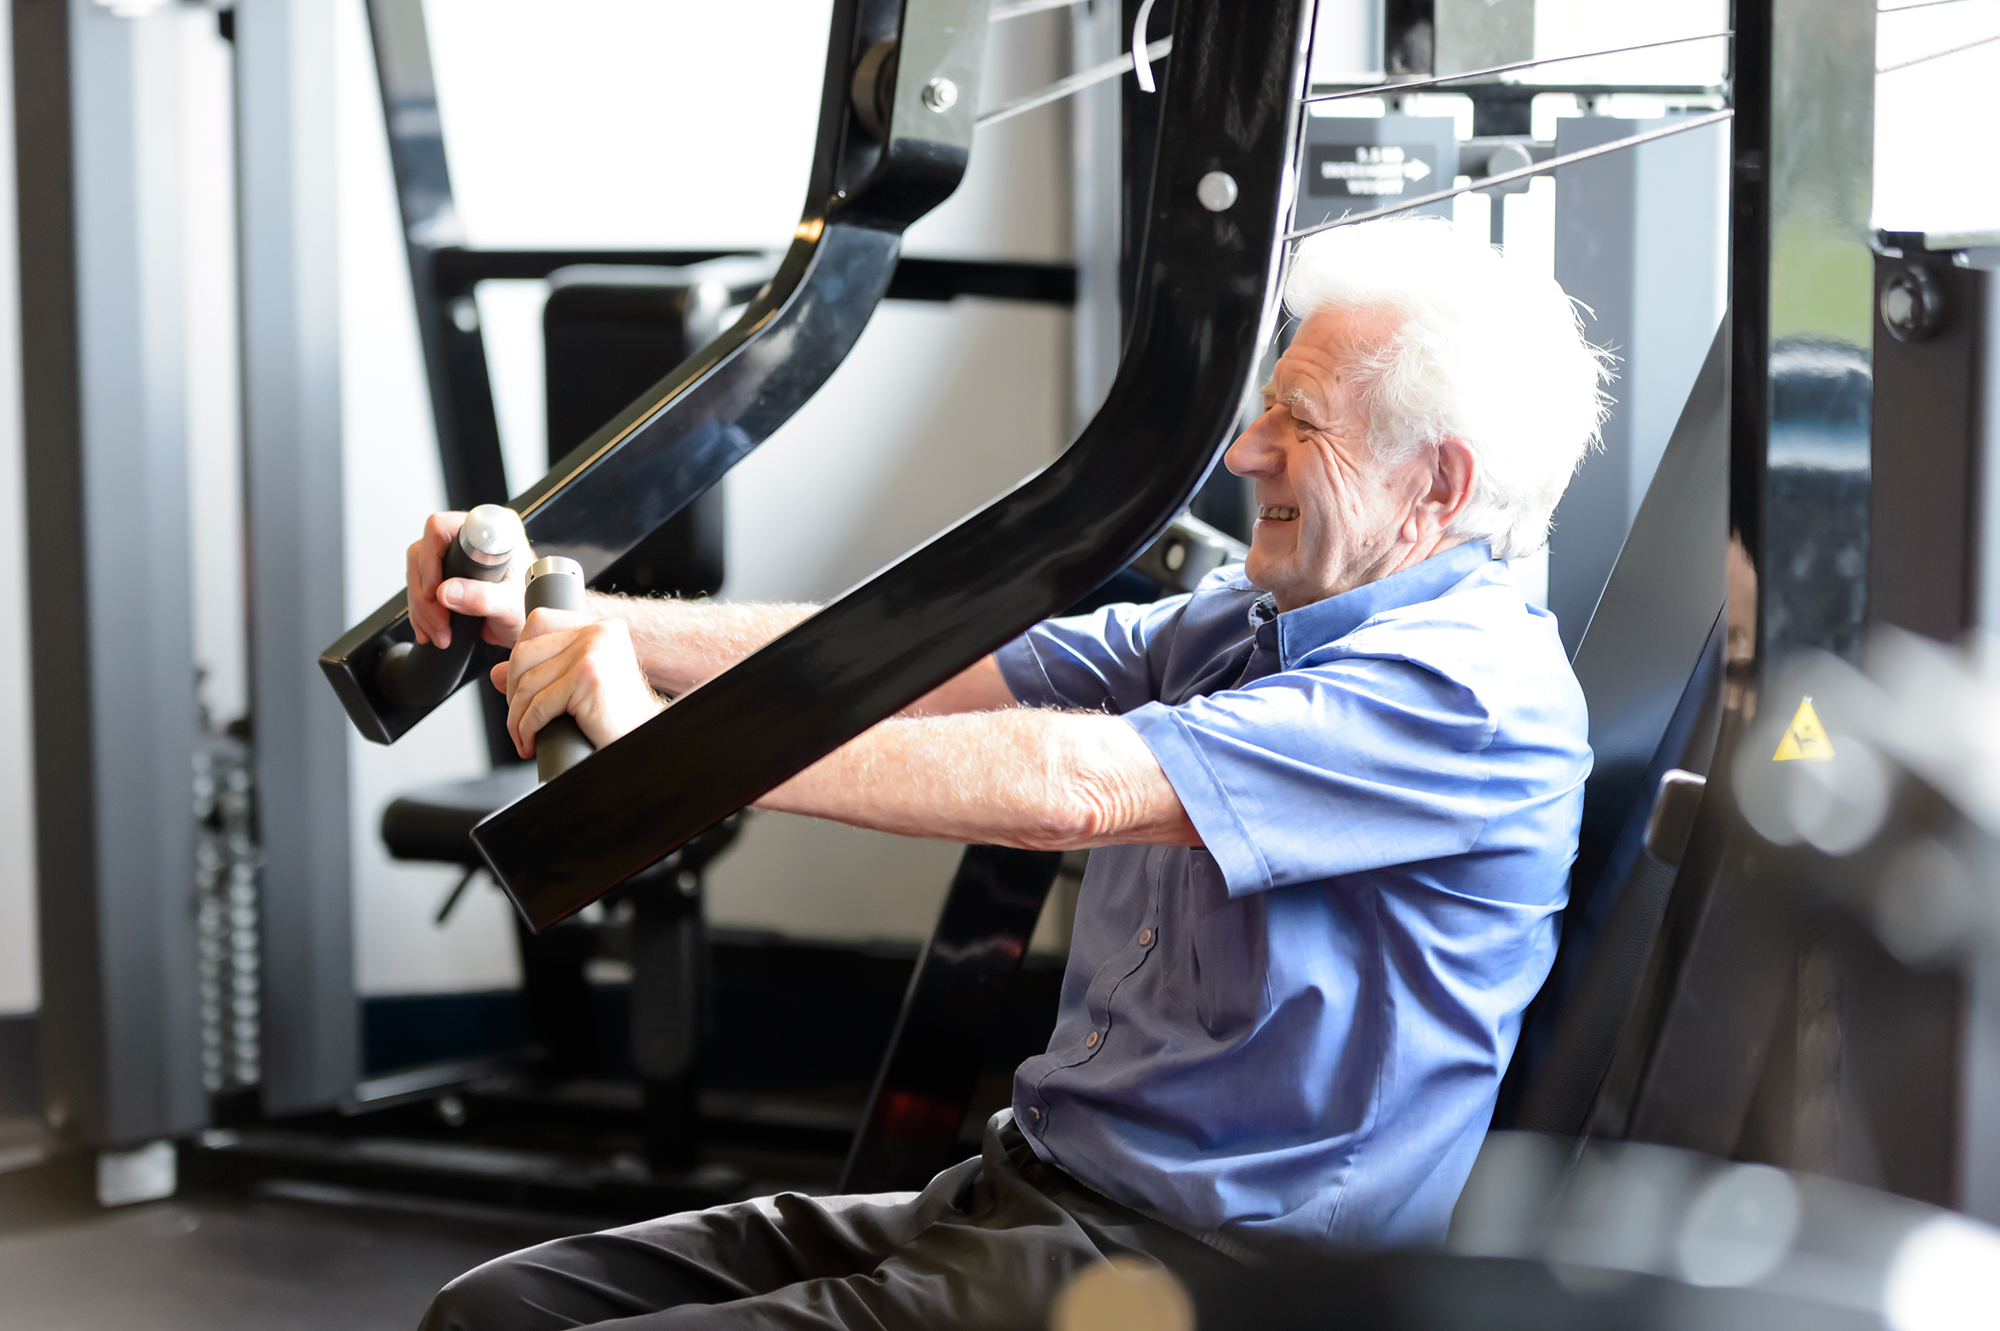 An elderly man exercises in a gym, performing a chest press